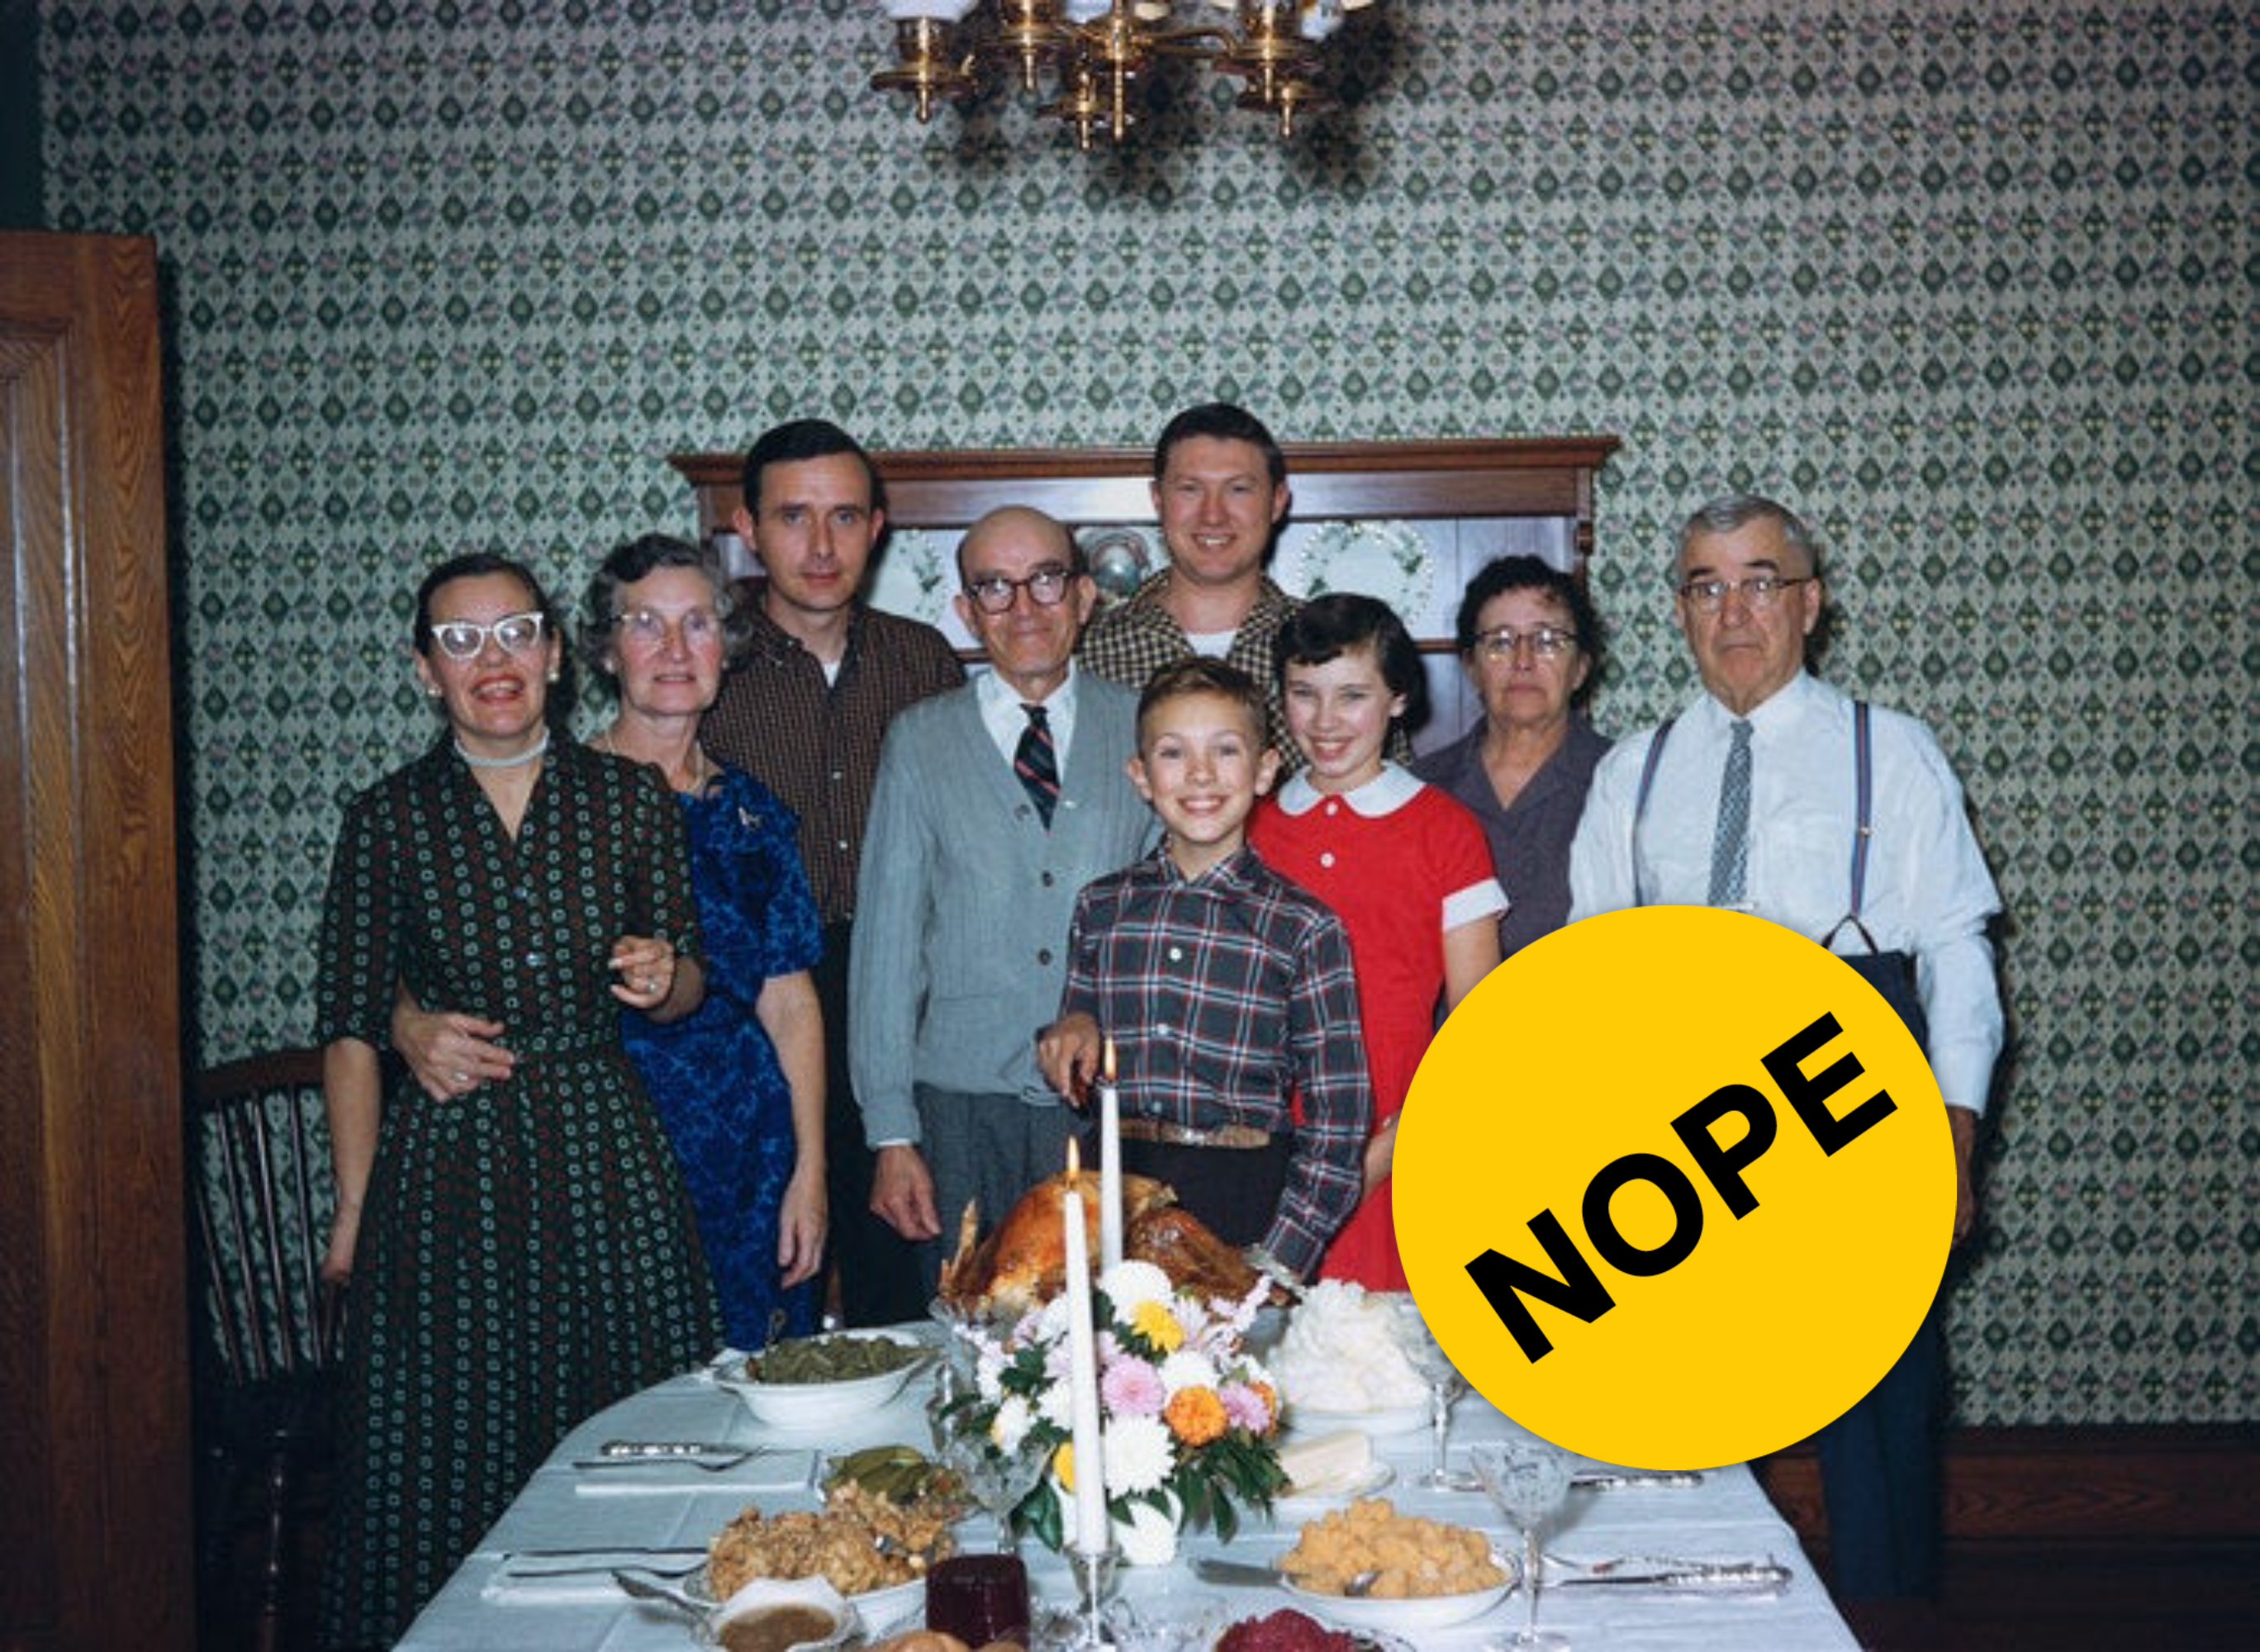 """Multi-generational family standing behind a thanksgiving table with """"Nope"""" label photoshopped on top."""